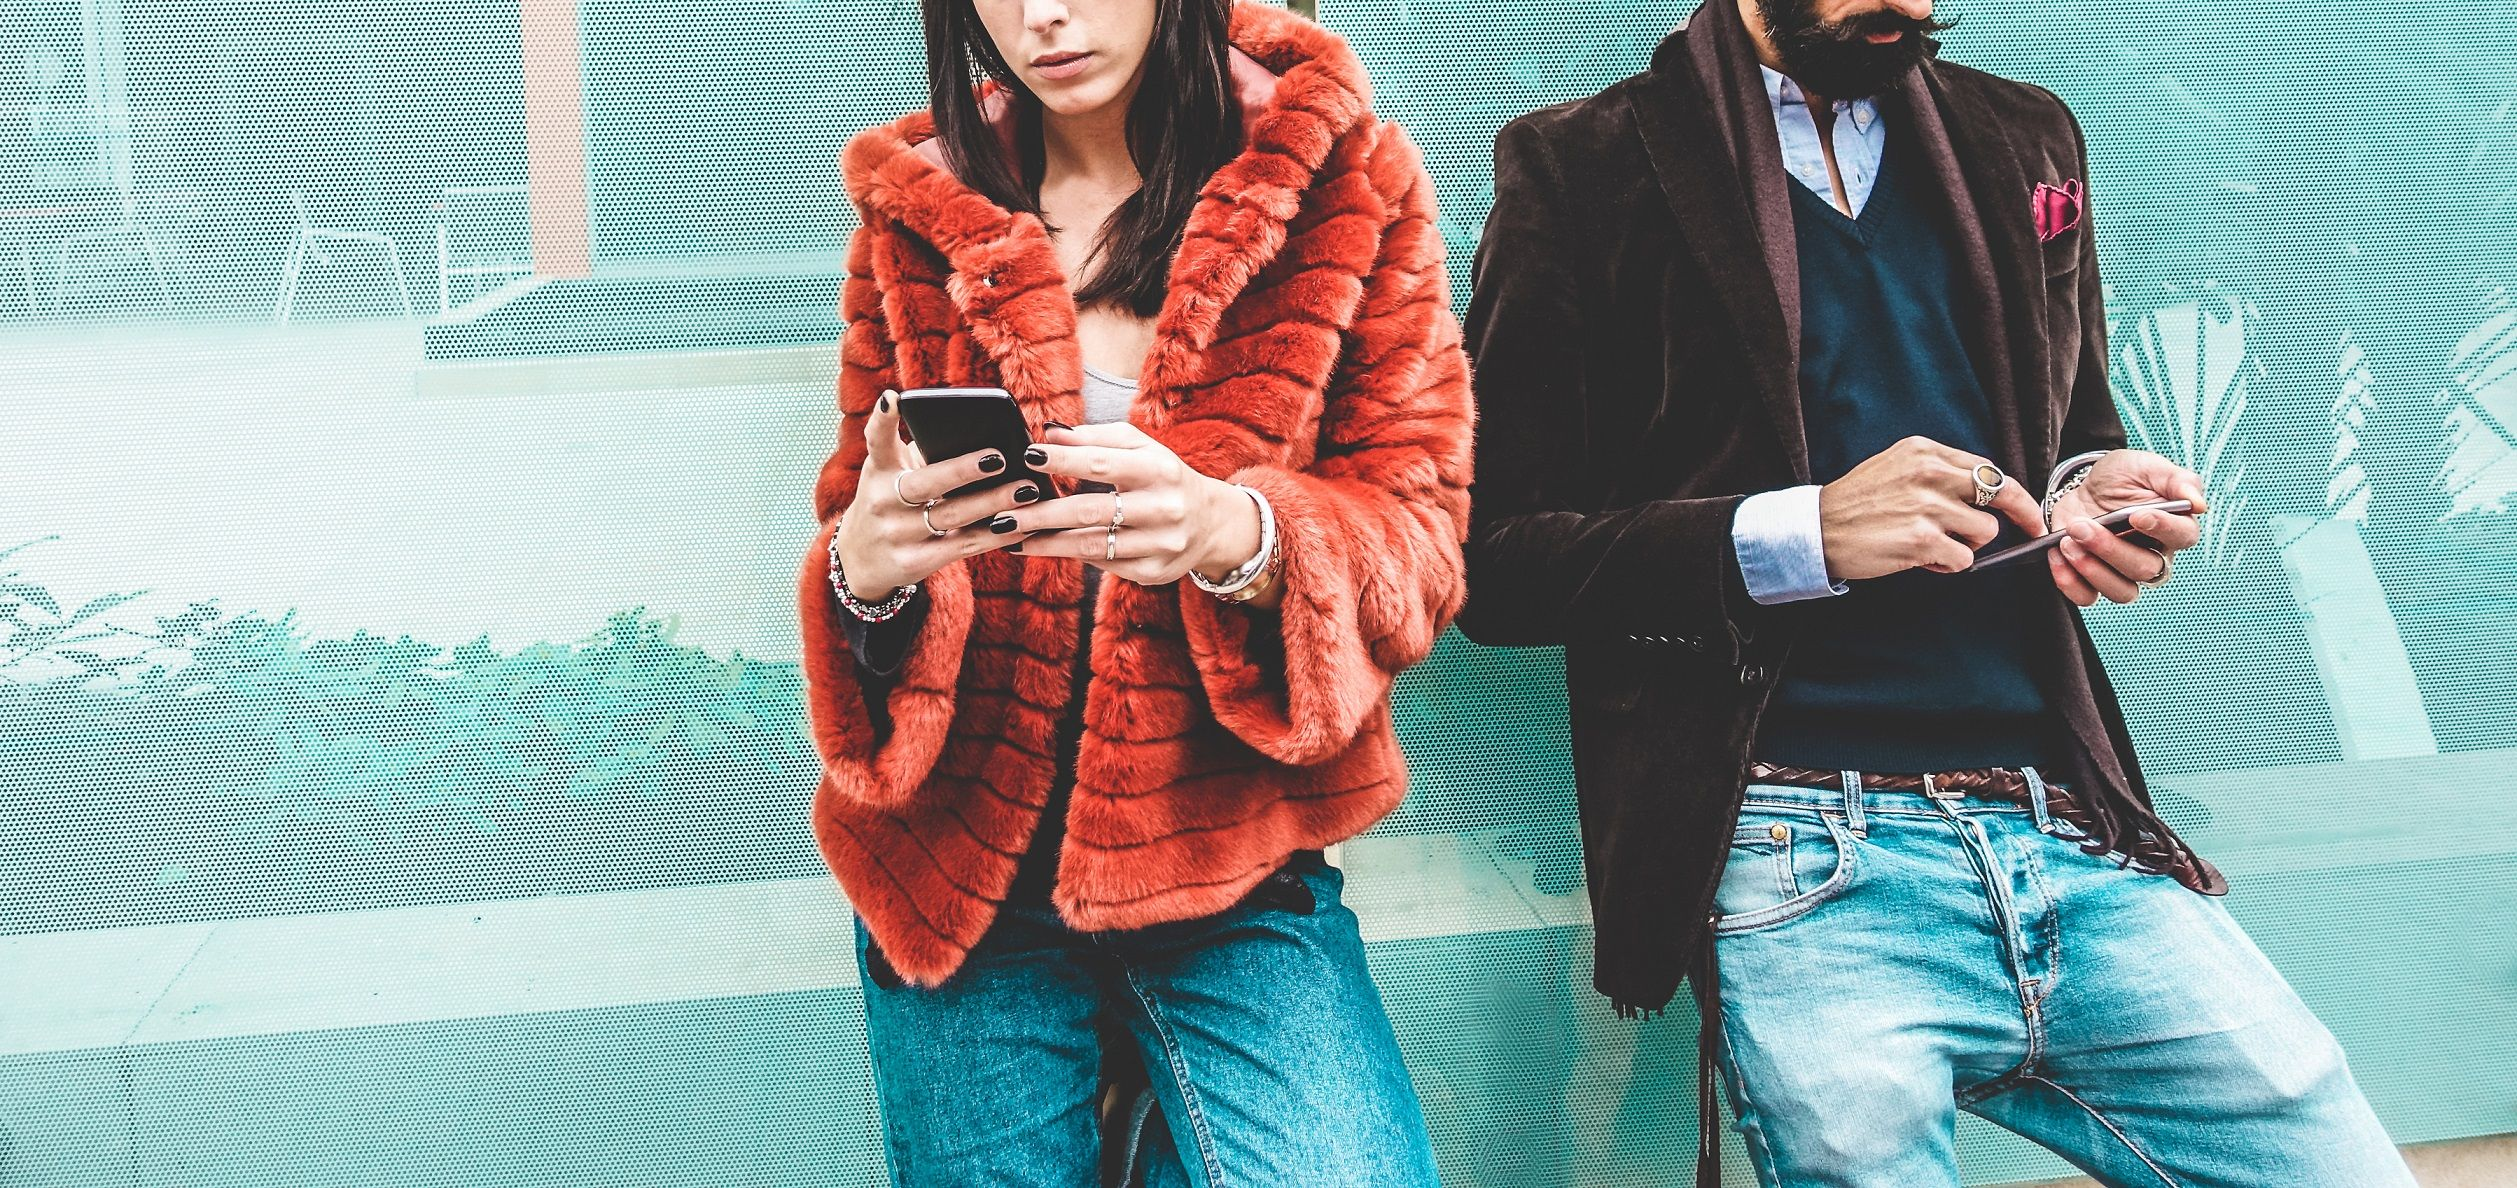 Fashion Influencer Garance Doré Walked Away From It All At The Height Of Her Success, But Why?